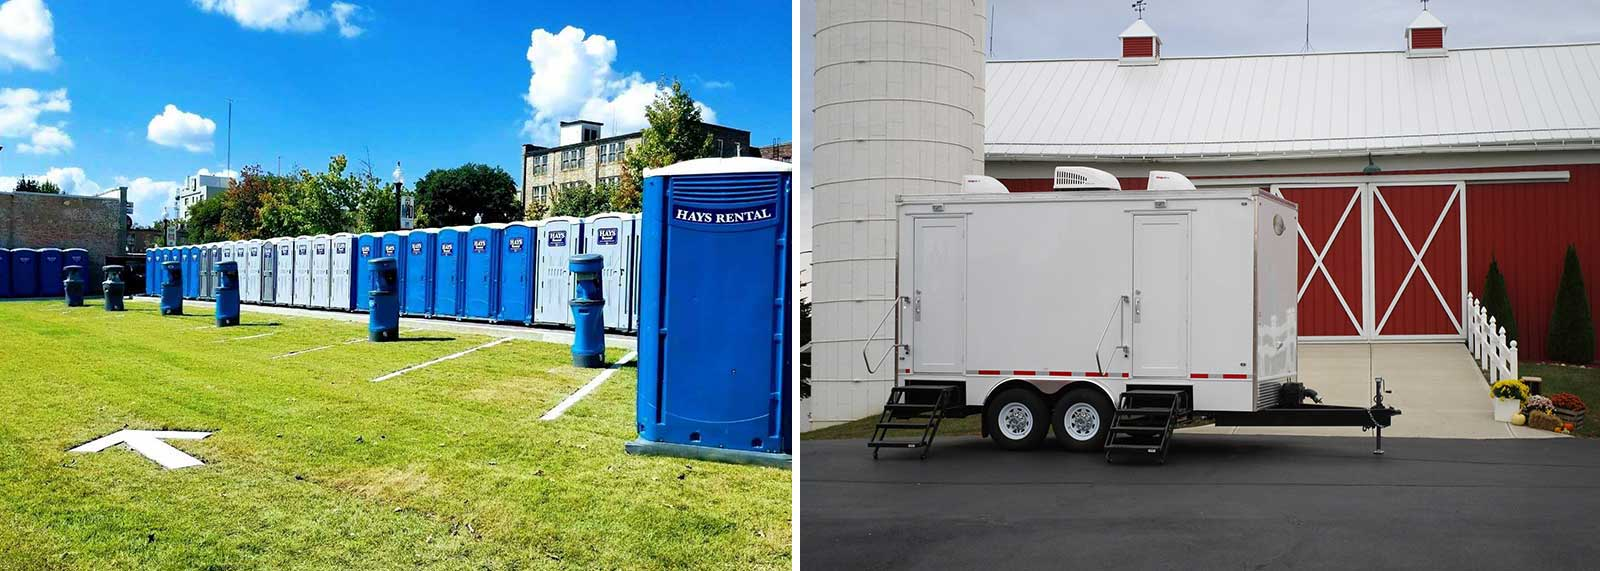 Rent portable restrooms in South Central Arkansas